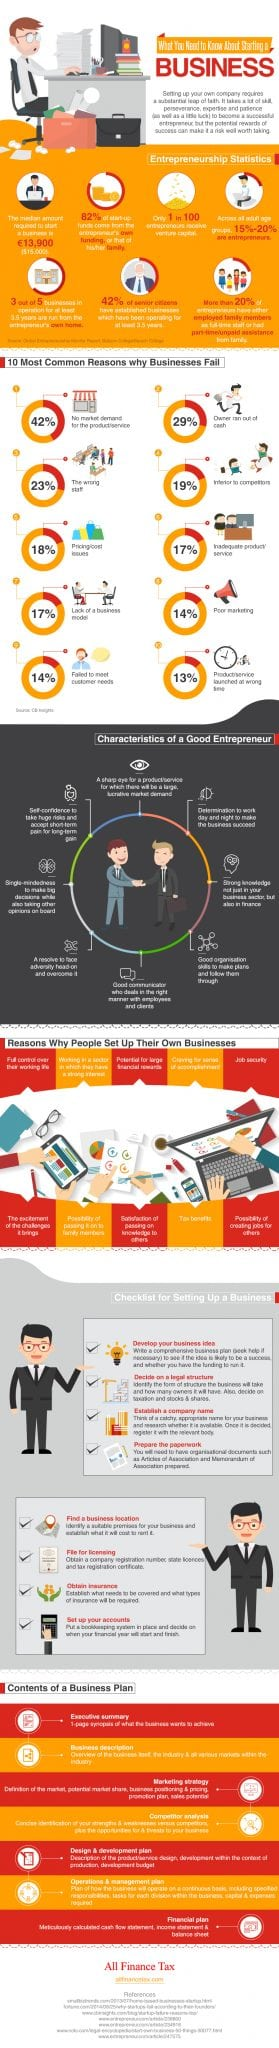 what-you-need-to-know-about-starting-a-business-infographic